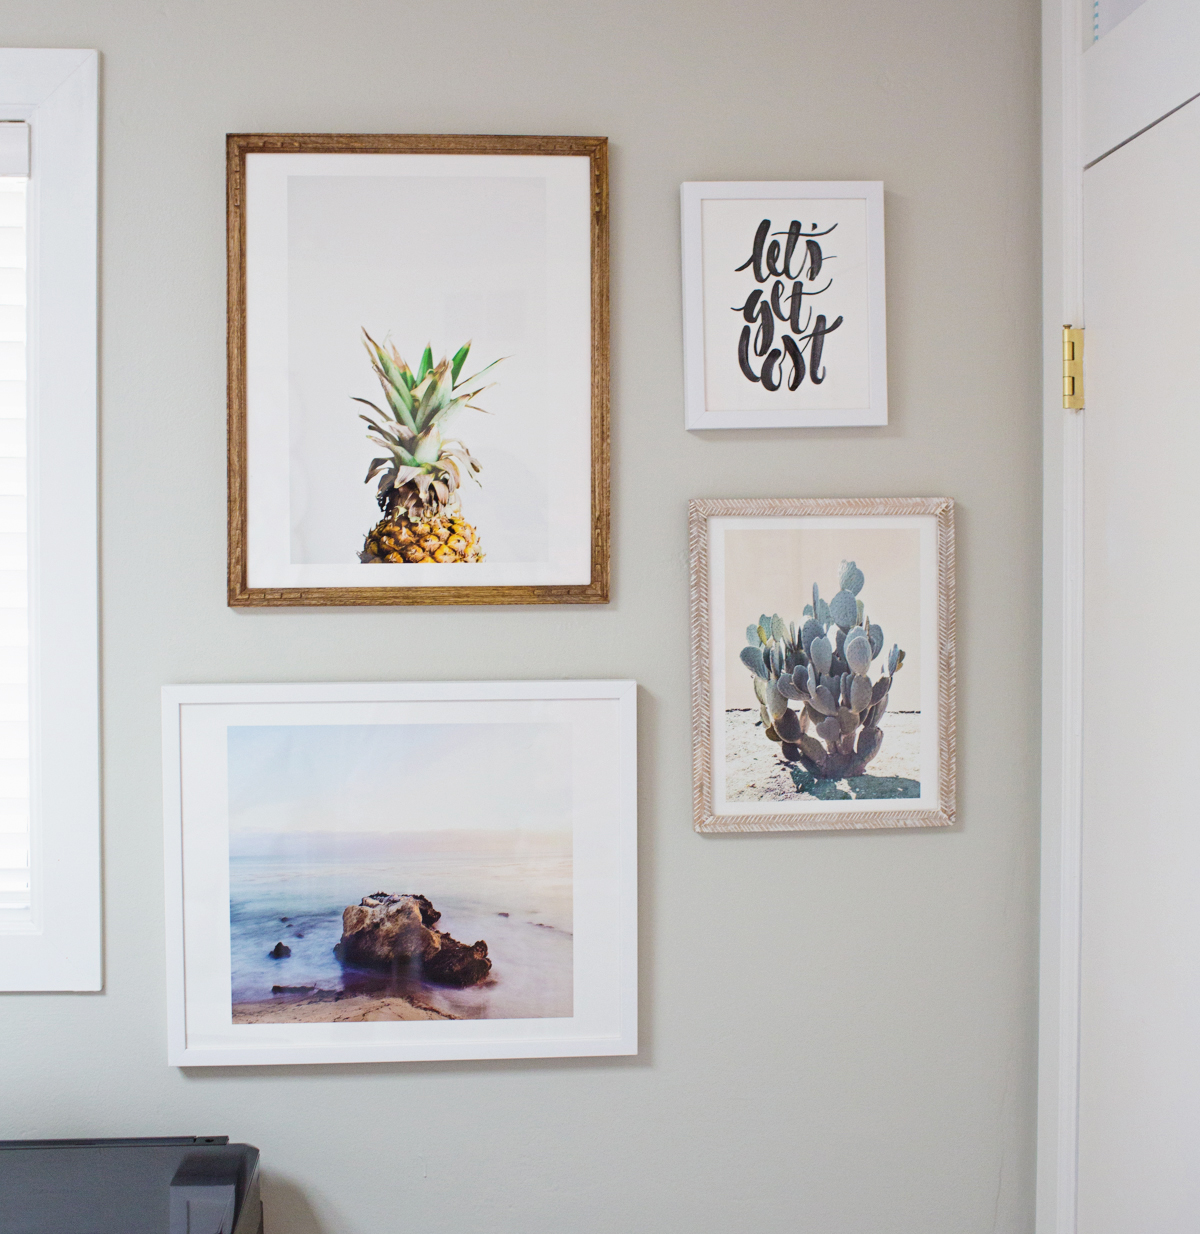 Gallery Wall Prints styling a gallery wall of art prints | diana elizabeth